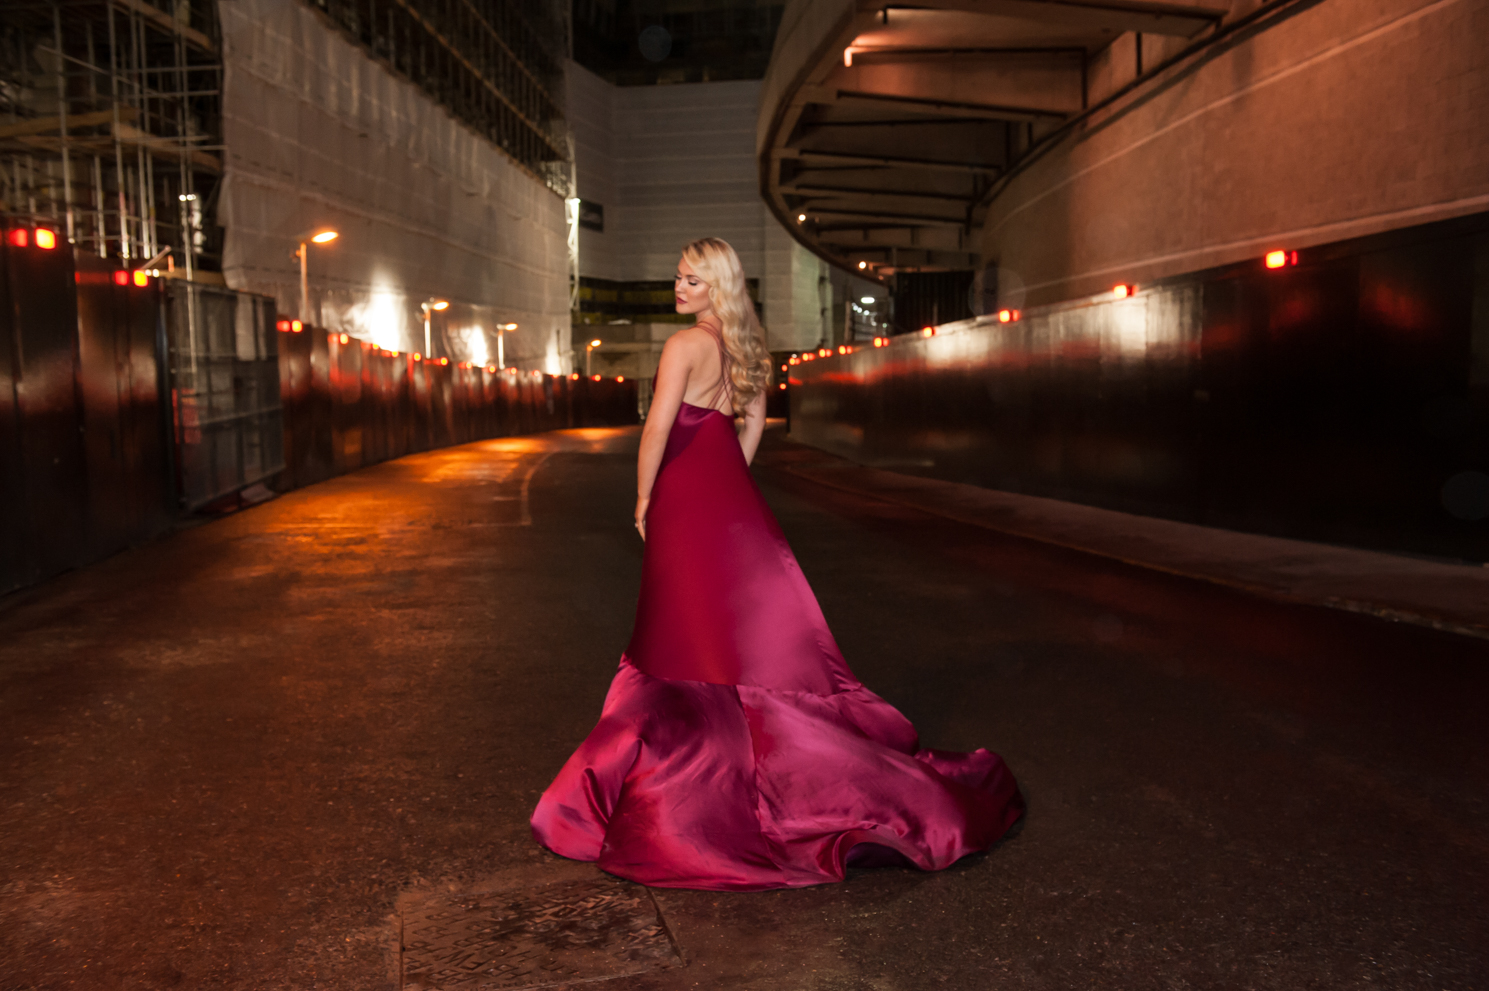 Soprano singer Camilla Kerslake in a Lee Paton London couture red dress photographed by Farnham, Surrey based fashion and portrait photographer James Muller